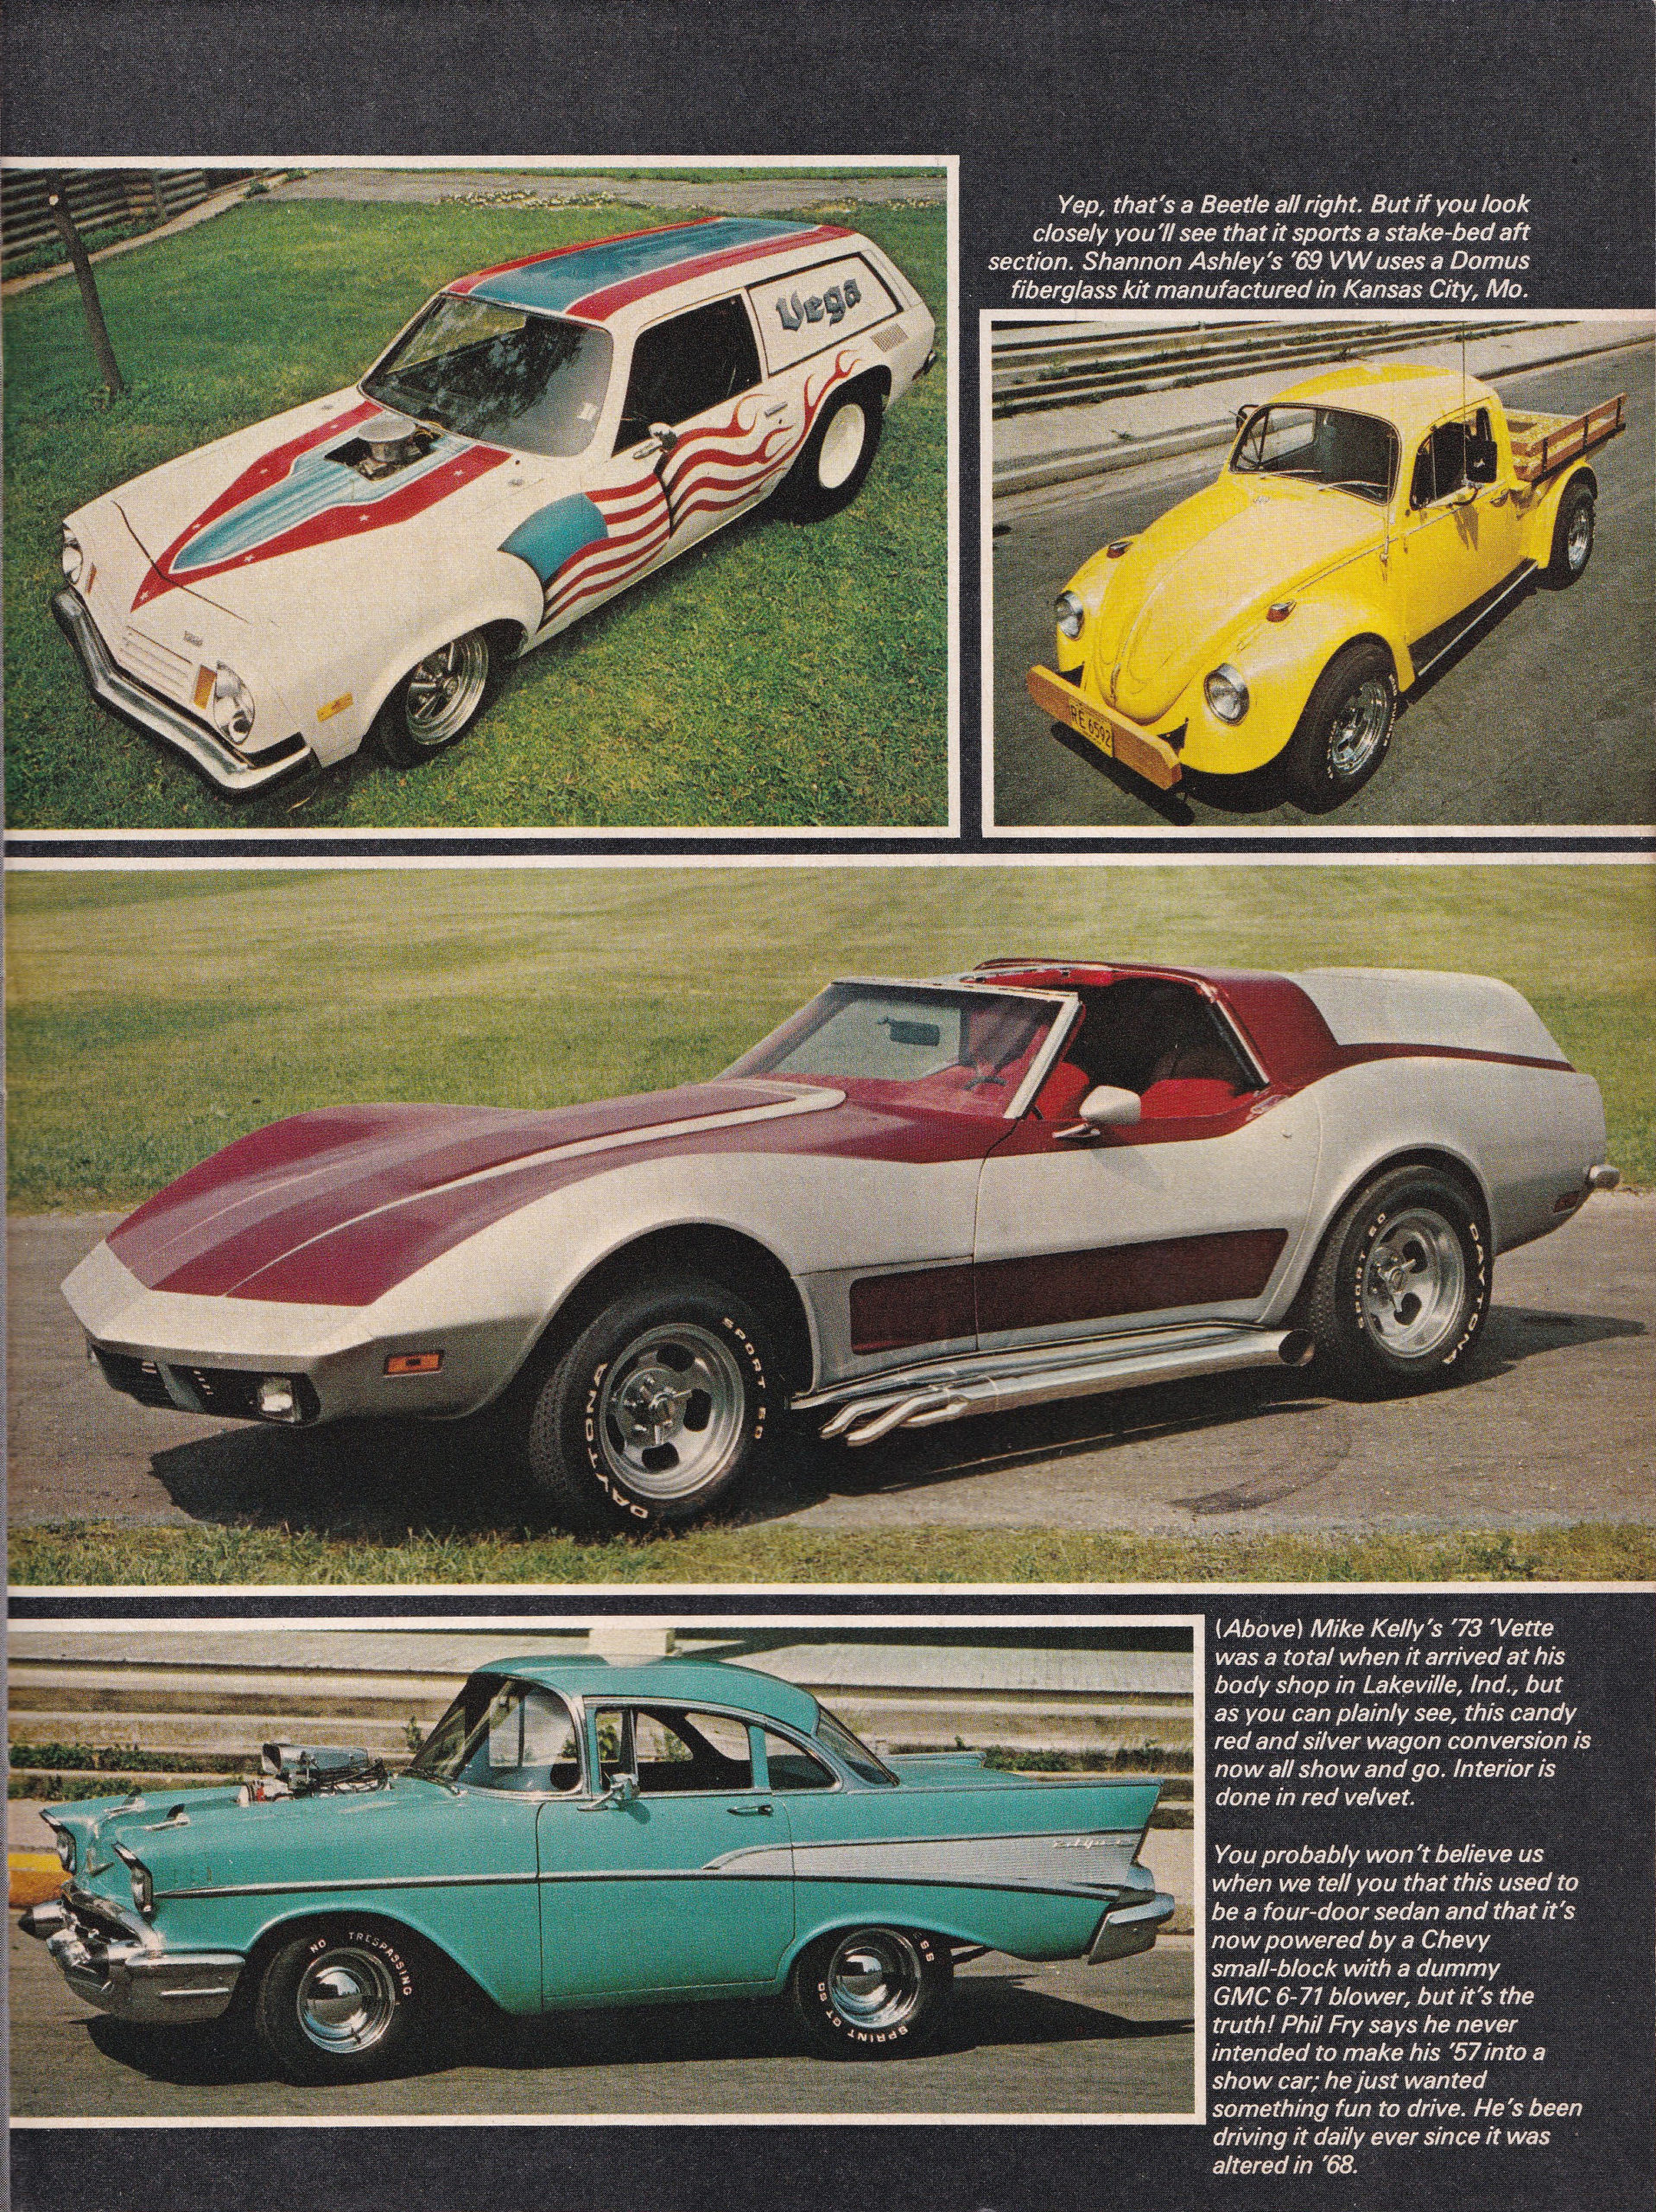 Street Machine / Van Nationals section from October 1975 issue of Popular Hot Rodding, page 6.